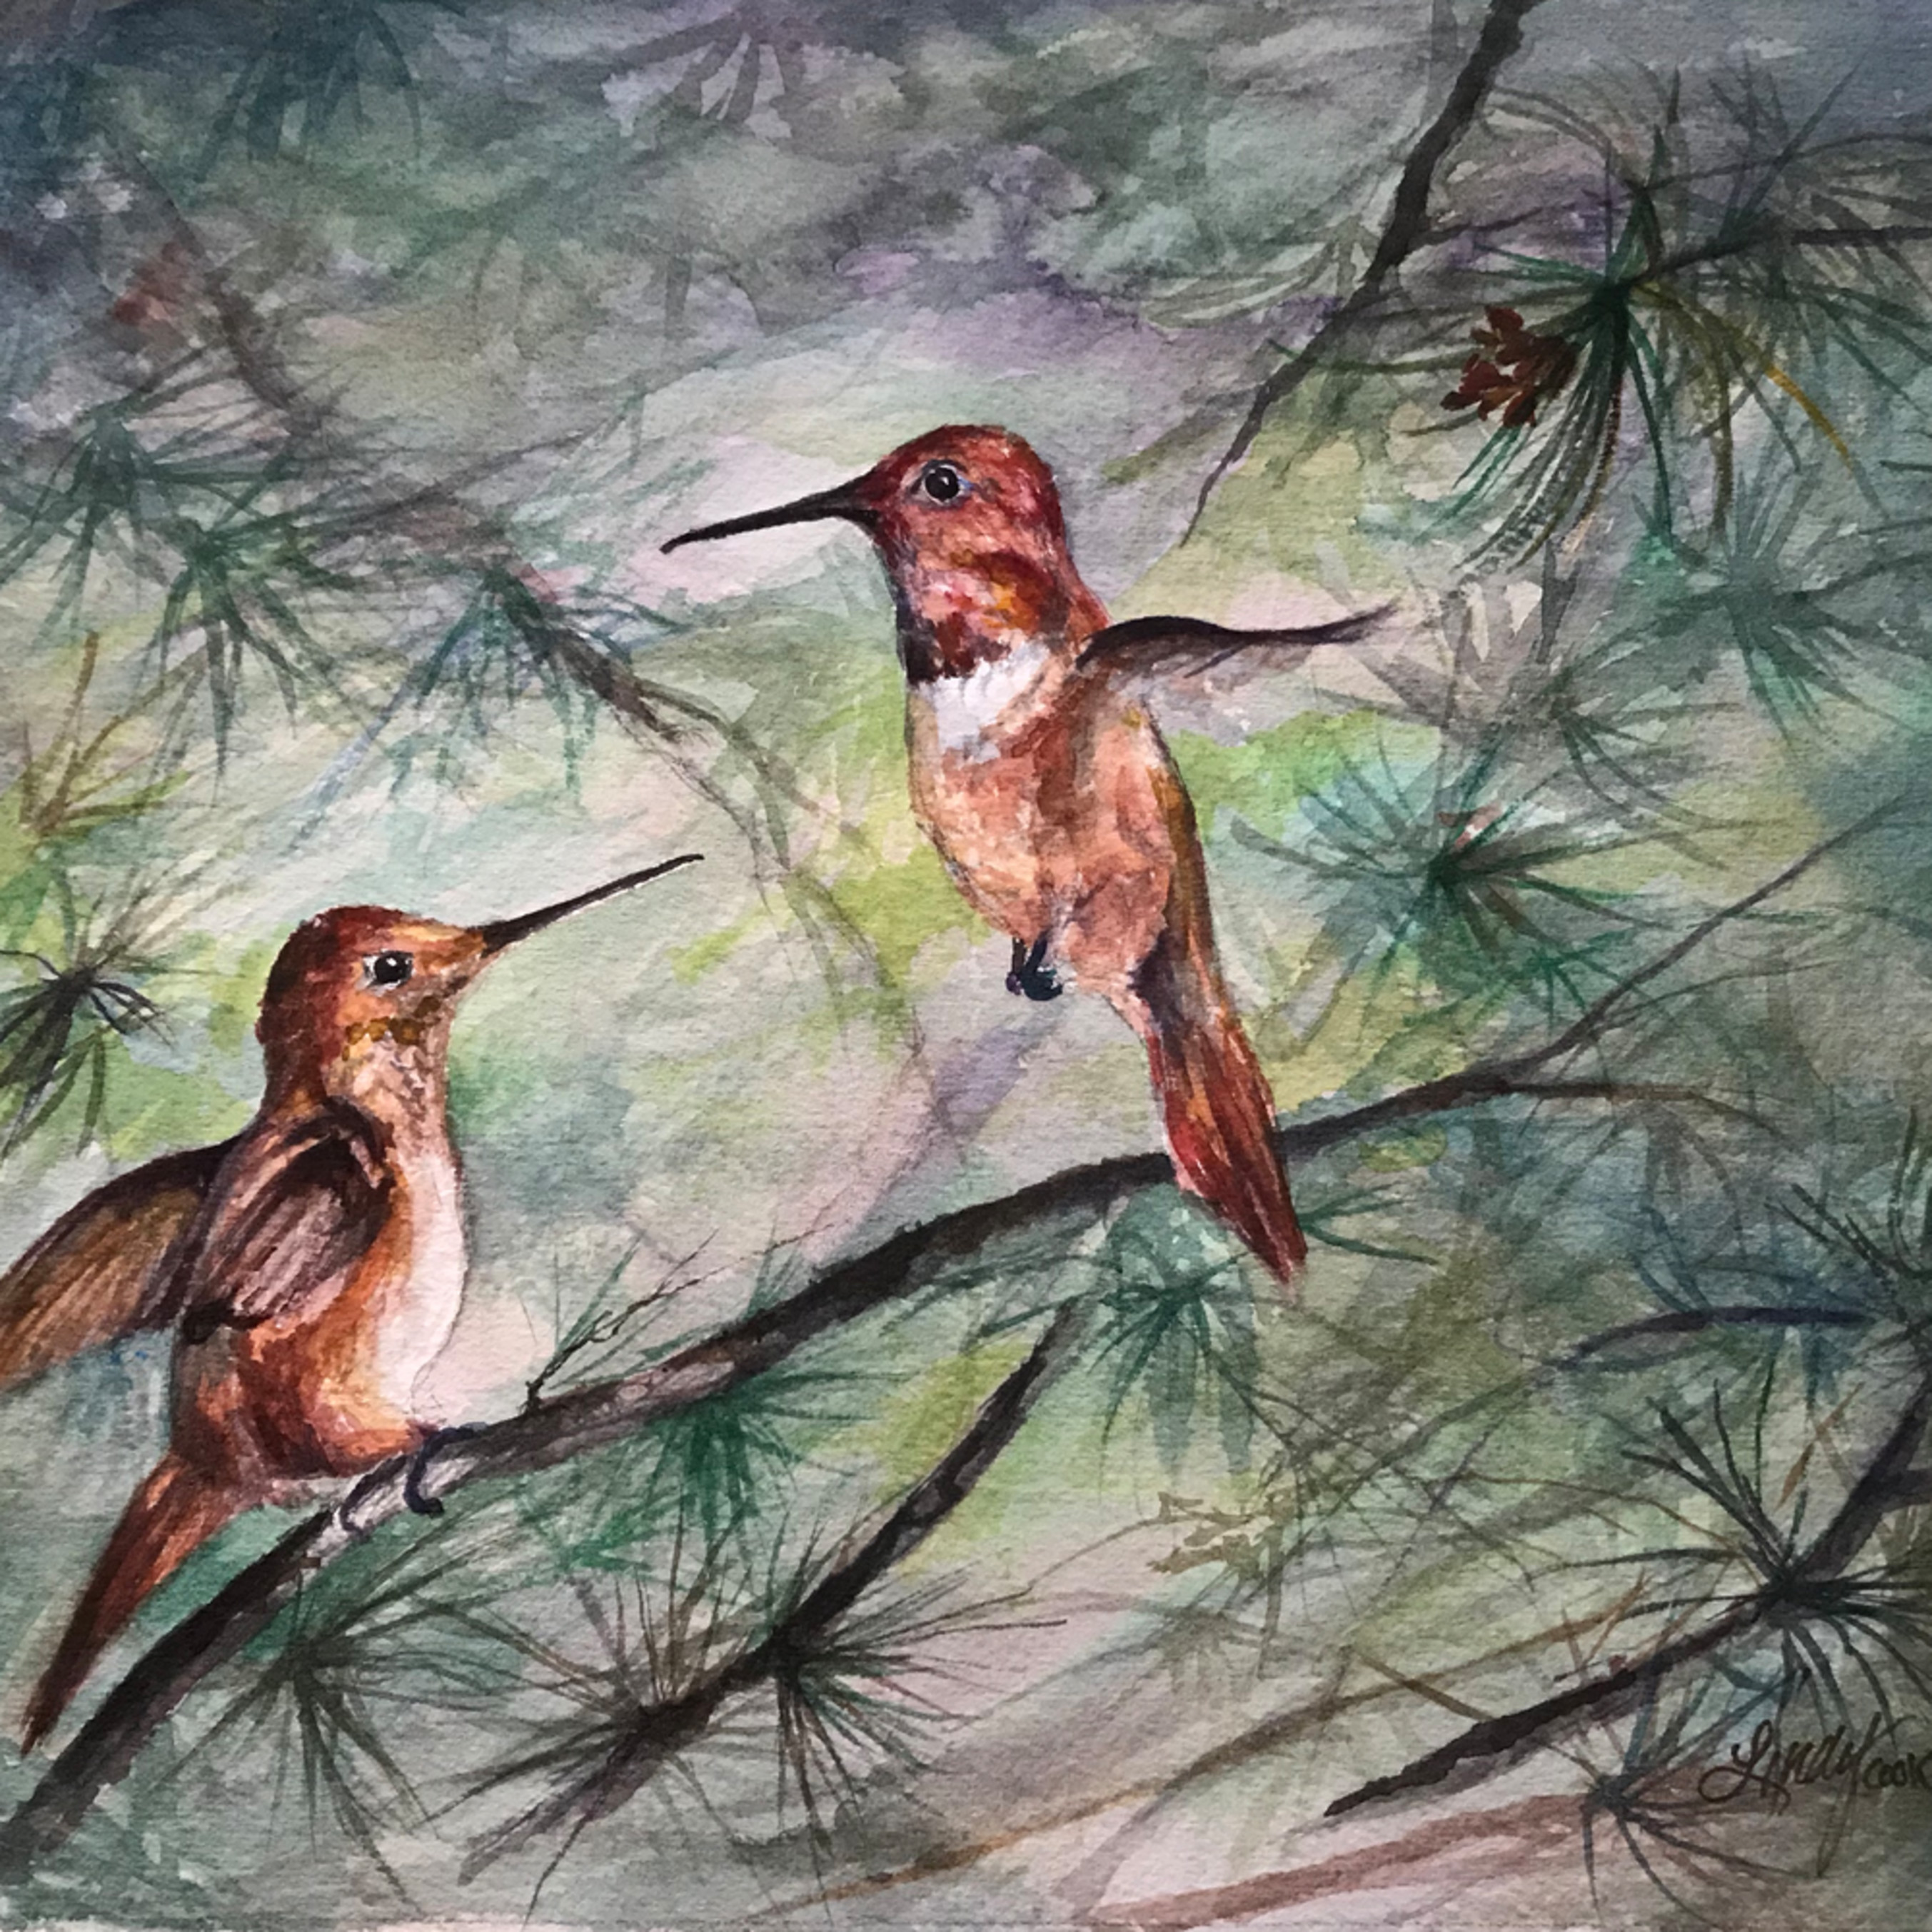 Comparing wing spans 8x10 watercolor lindy cook severns hal7yf